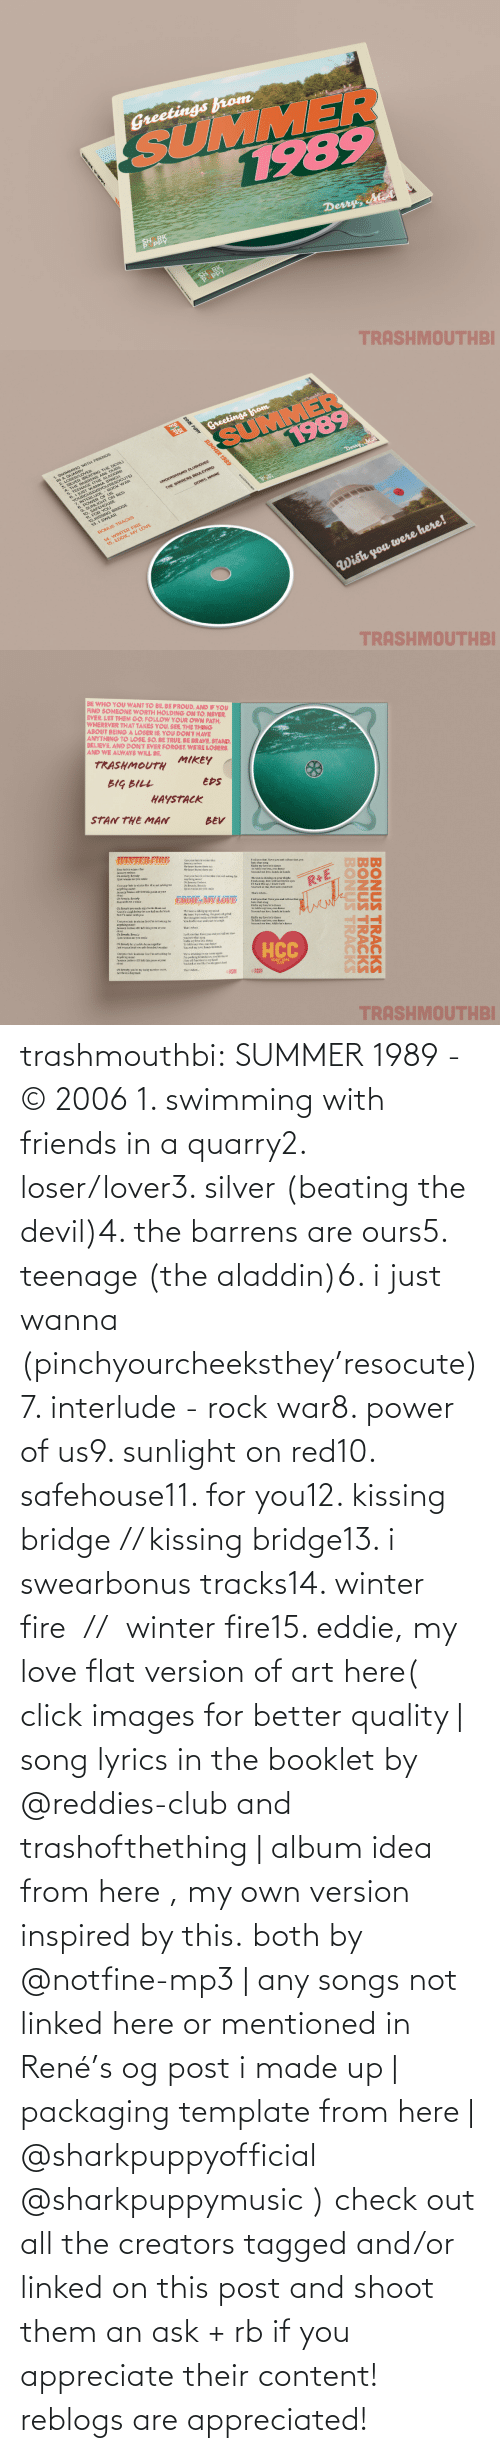 teenage: trashmouthbi: SUMMER 1989 - © 2006 1. swimming with friends in a quarry2. loser/lover3. silver (beating the devil)4. the barrens are ours5. teenage (the aladdin)6. i just wanna (pinchyourcheeksthey'resocute)7. interlude - rock war8. power of us9. sunlight on red10. safehouse11. for you12. kissing bridge // kissing bridge13. i swearbonus tracks14. winter fire  //  winter fire15. eddie, my love flat version of art here( click images for better quality | song lyrics in the booklet by @reddies-club​ and trashofthething | album idea from here , my own version inspired by this. both by @notfine-mp3​ | any songs not linked here or mentioned in René's og post i made up | packaging template from here | @sharkpuppyofficial​ @sharkpuppymusic​ ) check out all the creators tagged and/or linked on this post and shoot them an ask + rb if you appreciate their content! reblogs are appreciated!